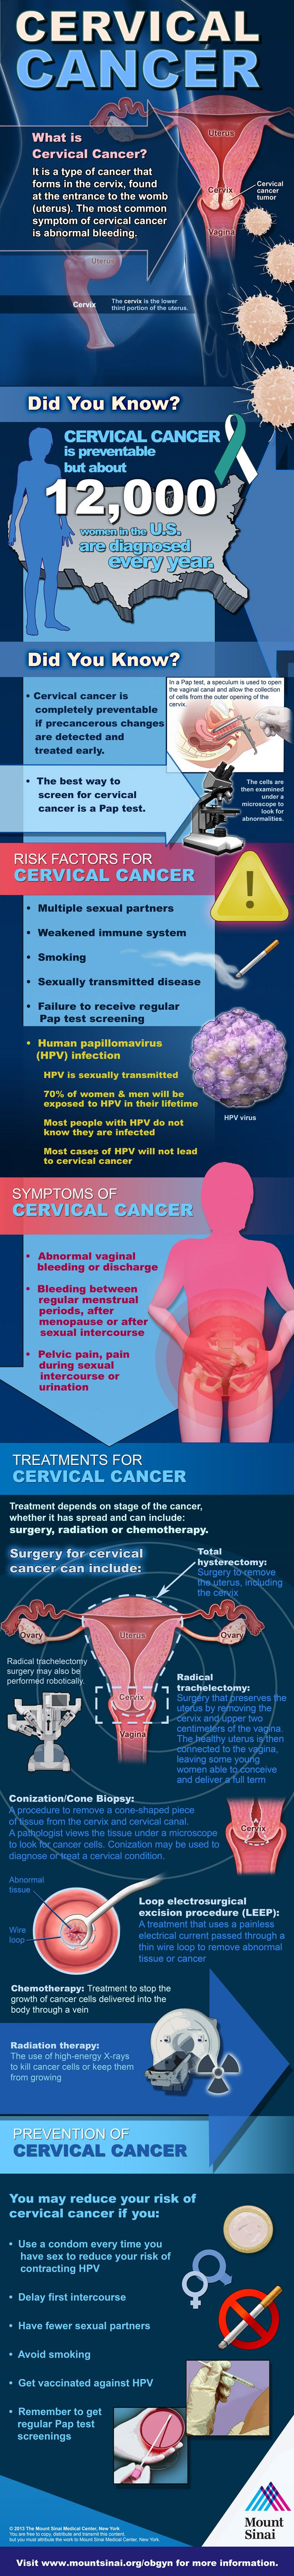 January is Cervical Cancer Awareness Month. Through regular testing, cervical cancer is the easiest gynecologic cancer to prevent. Check in over the next week for prevention tips, FAQs, facts and more. Visit www.mountsinai.or... for more info. #infographic